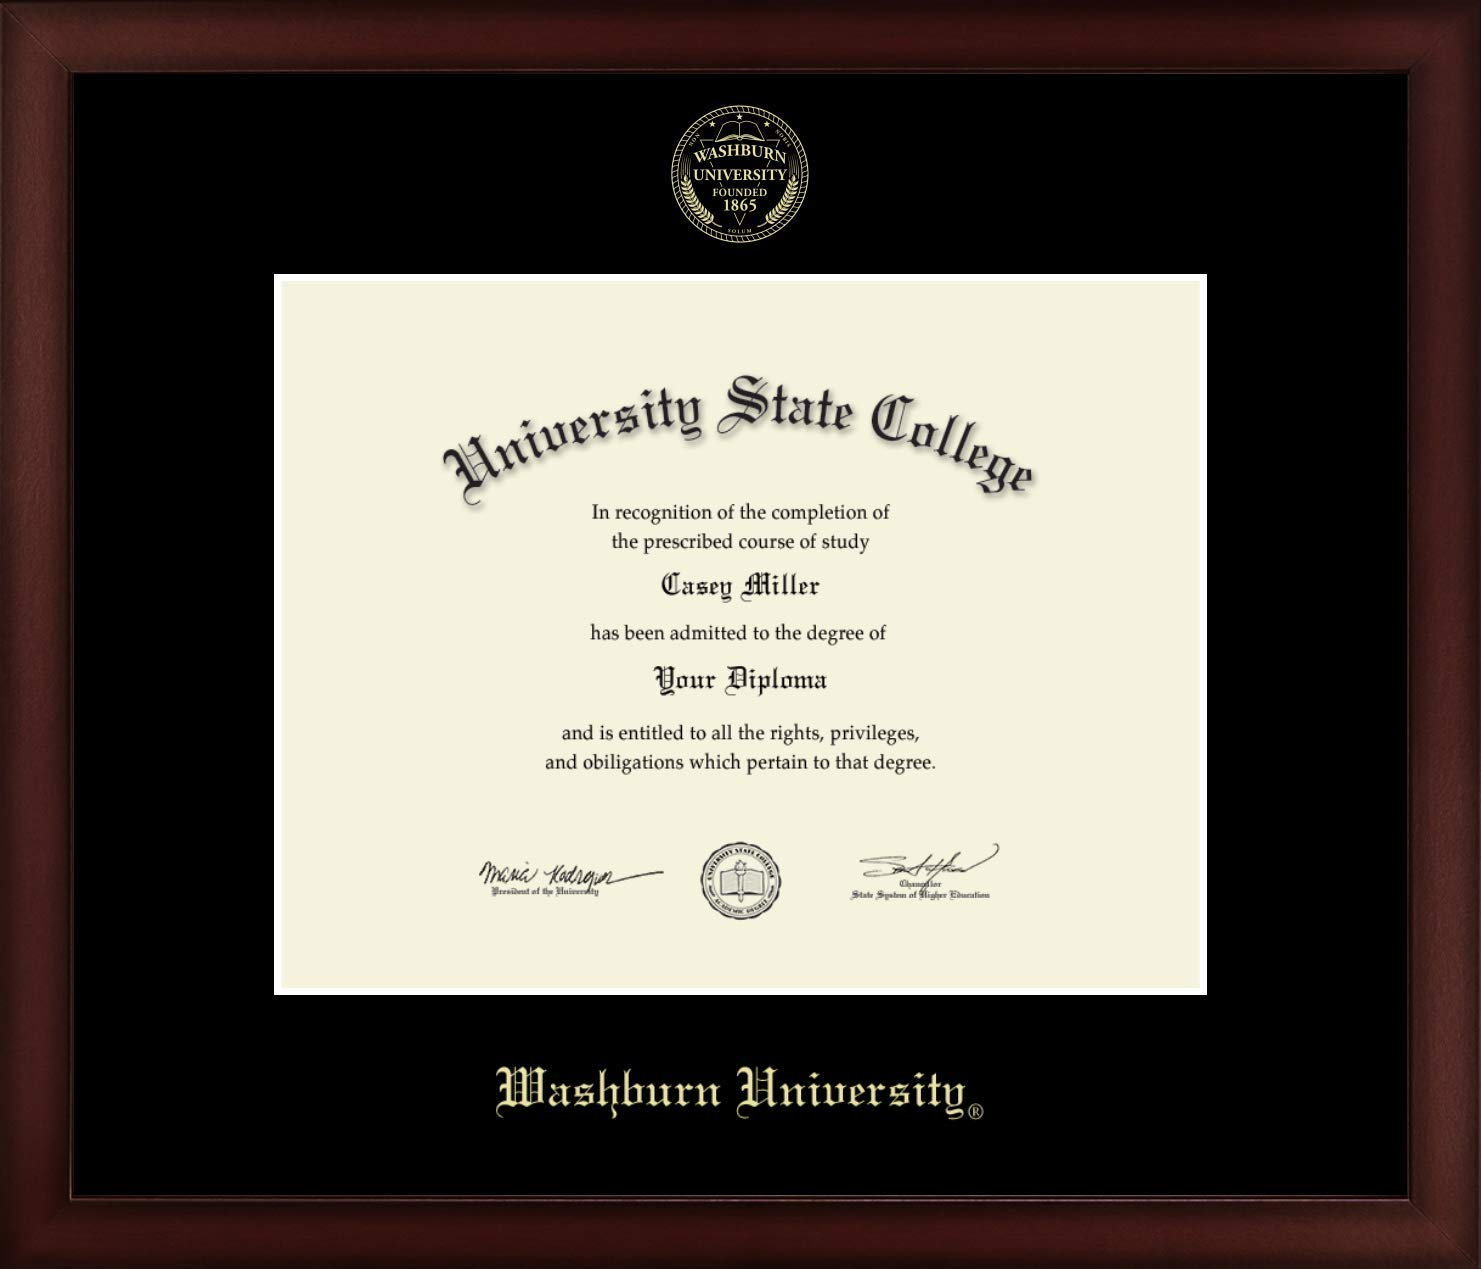 Washburn University - Officially Licensed - Gold Embossed Diploma Frame - Diploma Size 11'' x 8.5''